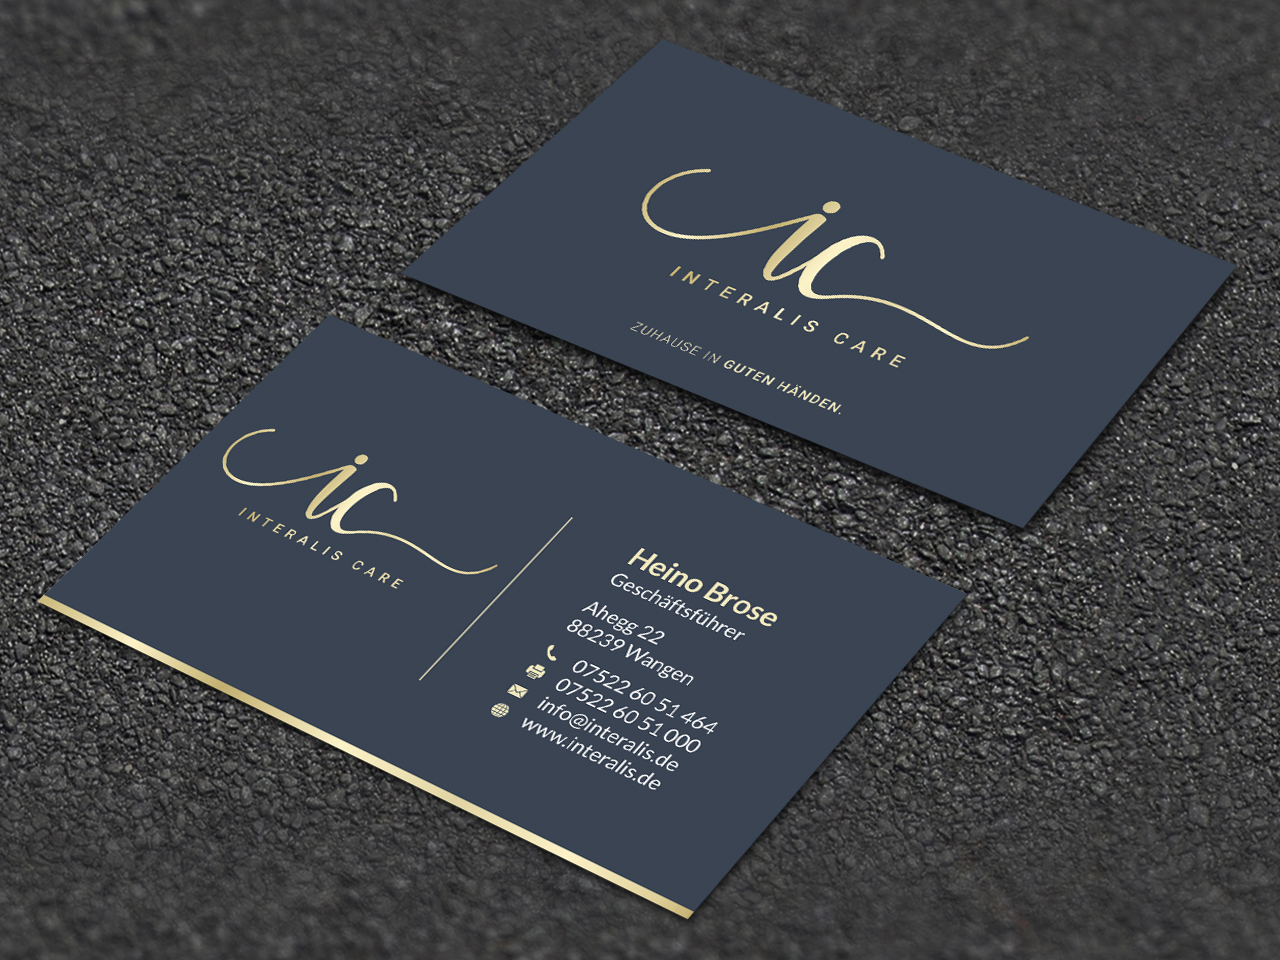 Elegant Playful Business Card Design Job Business Card